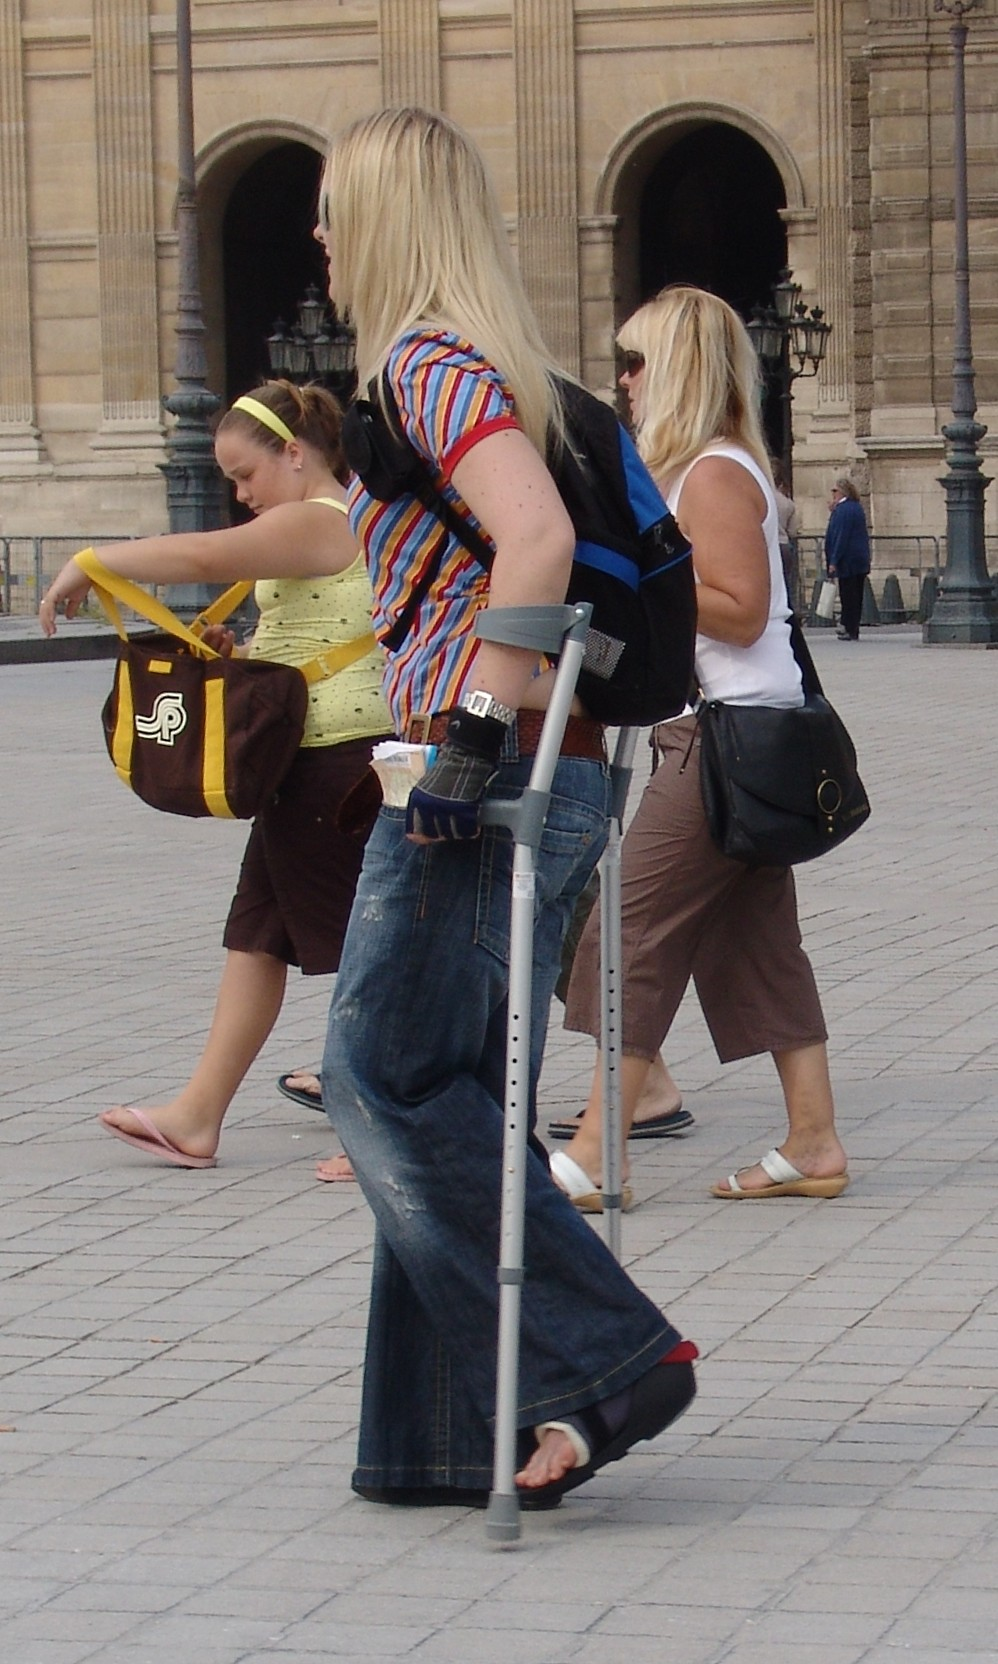 Blonde woman in black SLC on crutches.